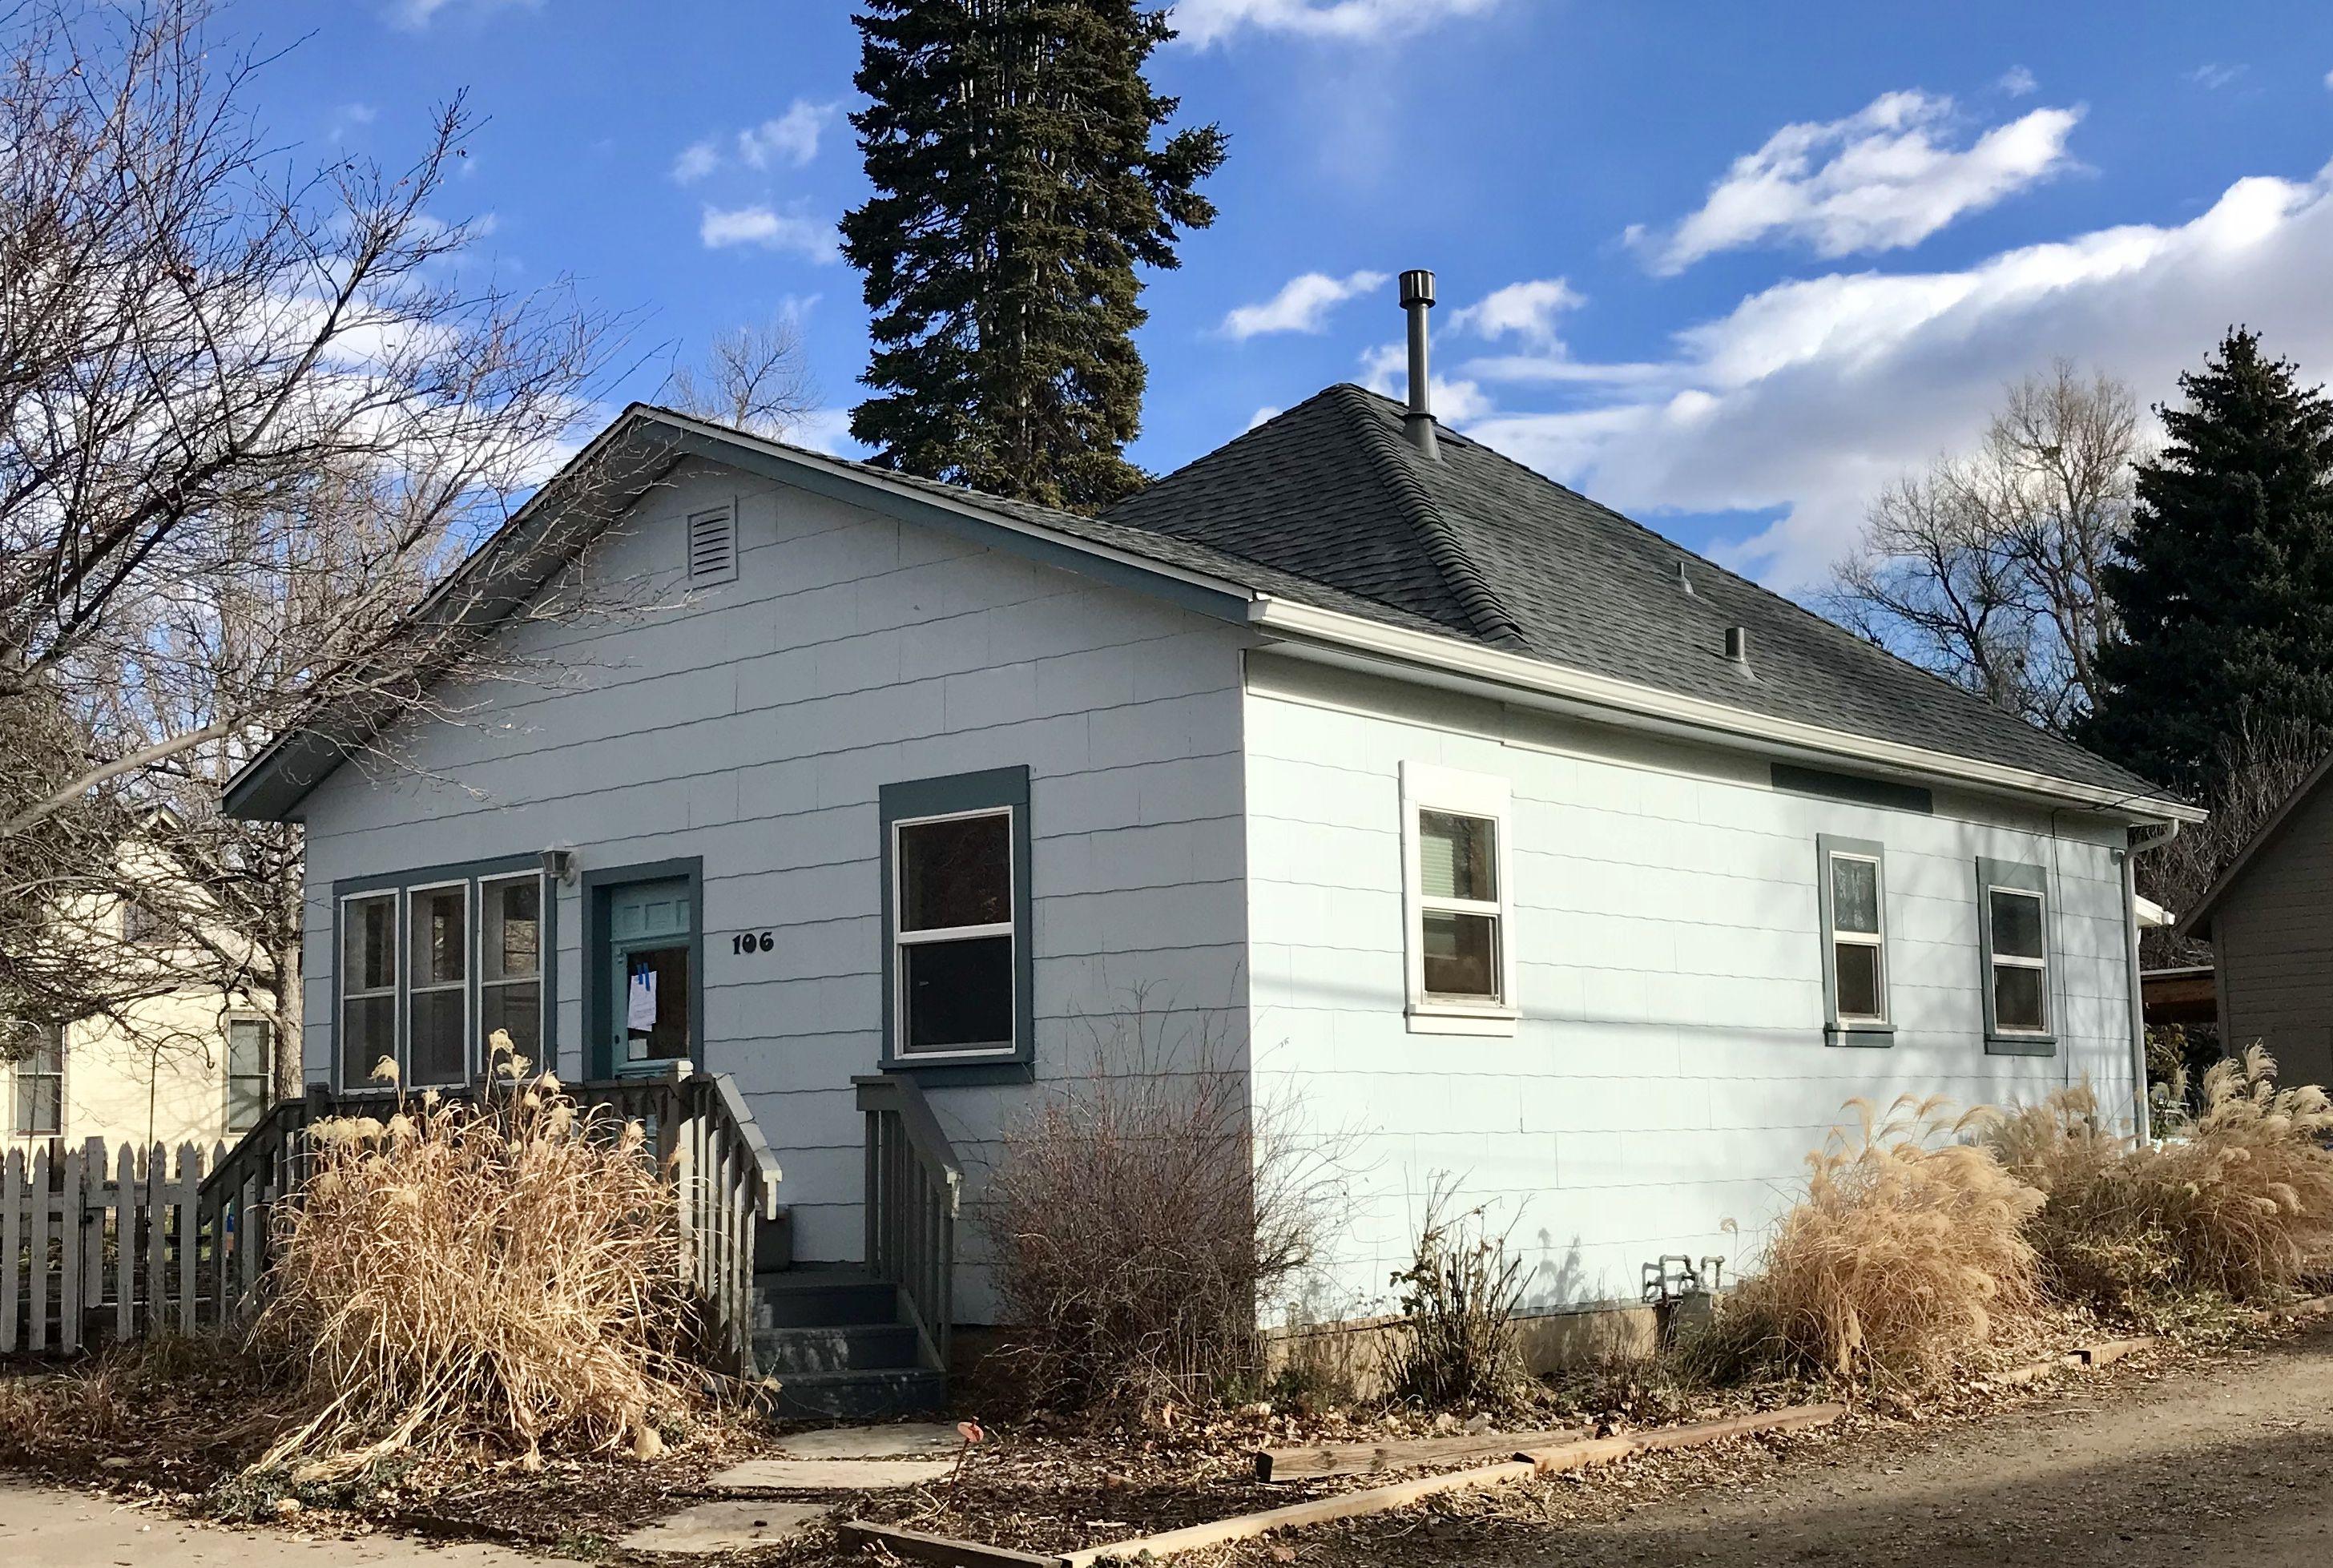 This Neat Older Home In Fort Collins Was Re Roofed With Pewter Gray Shingles From The Gaf Timberline Hd Line Of Shingles With Images Shingle Colors Roof Old Houses